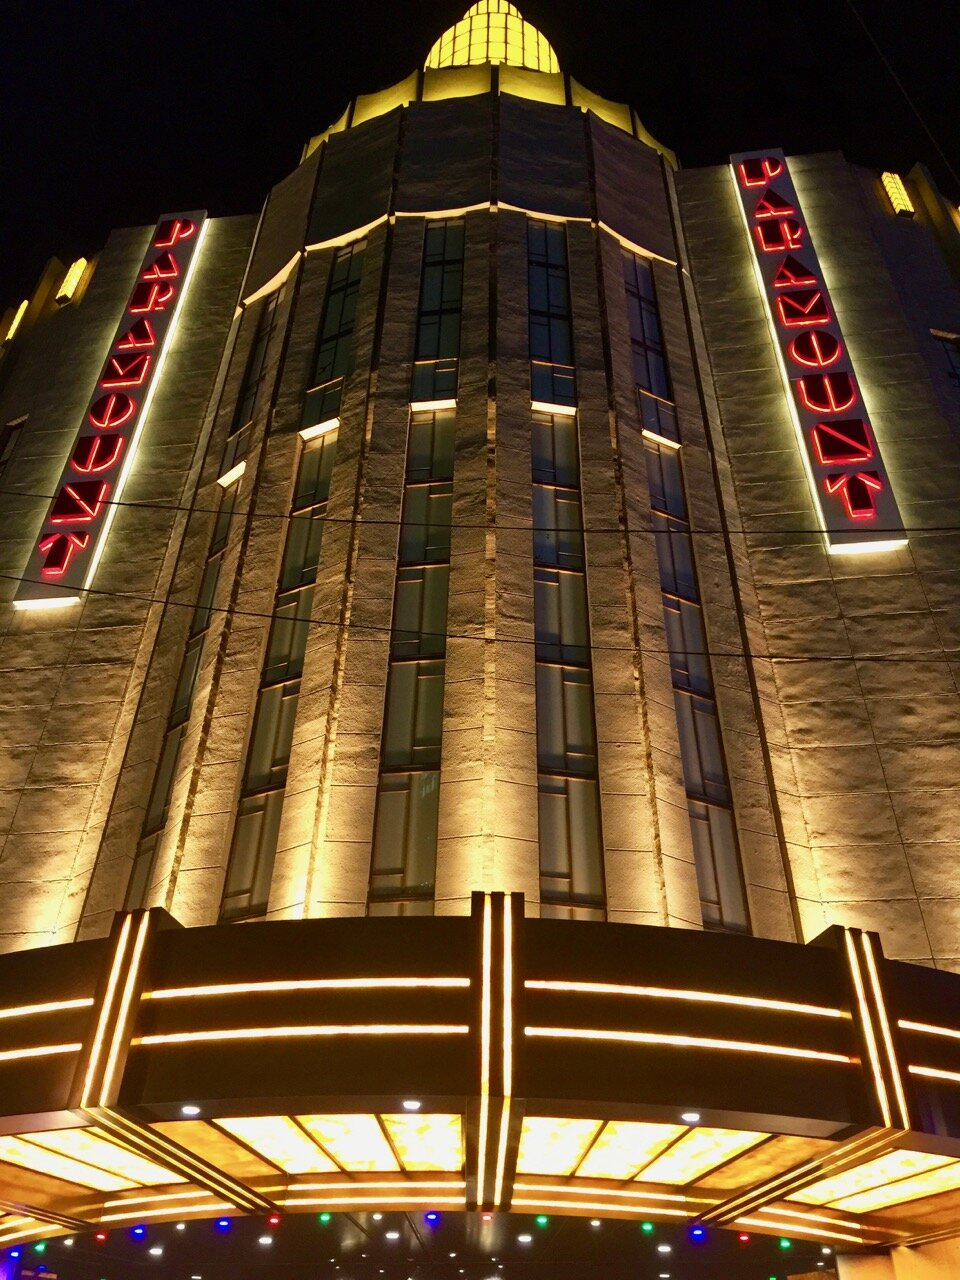 Paramount ballroom marquee by night